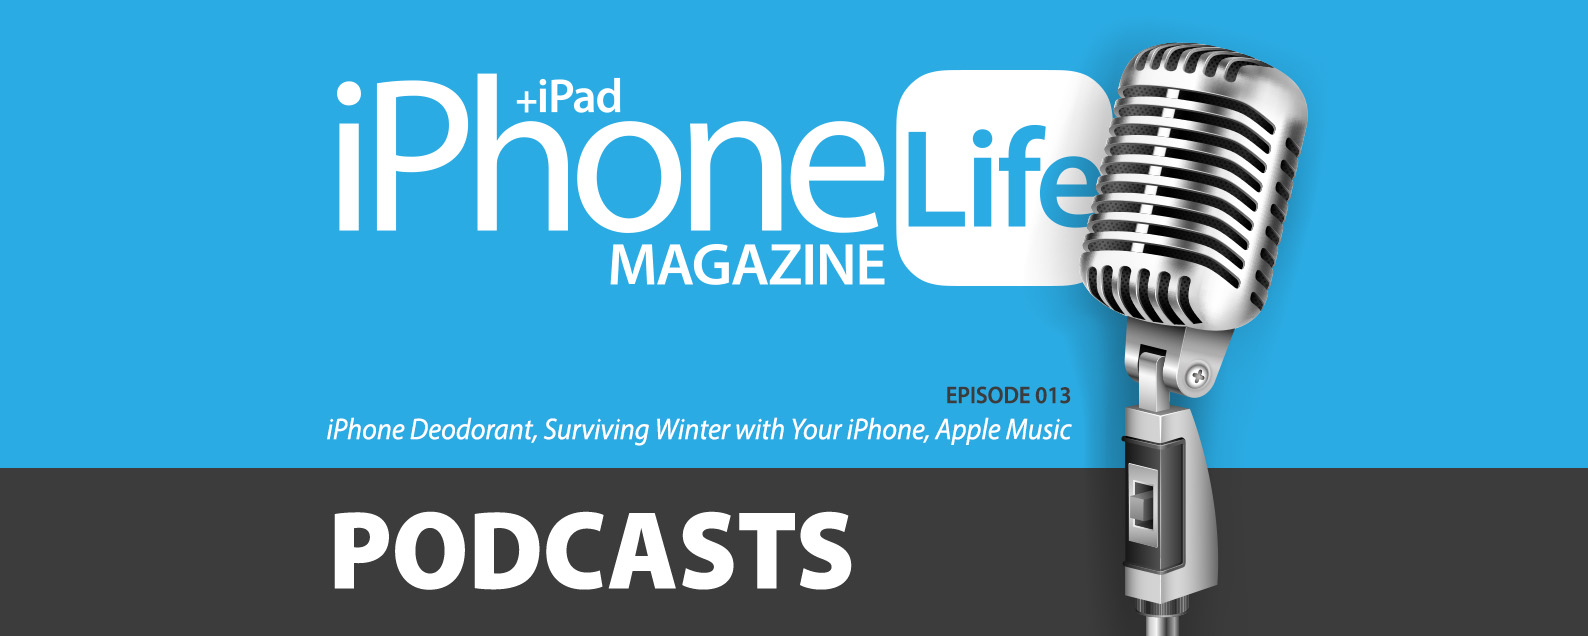 iPhone Life Podcast Episode 13: iPhone Deodorant, Surviving Winter with Your iPhone, and Apple Music